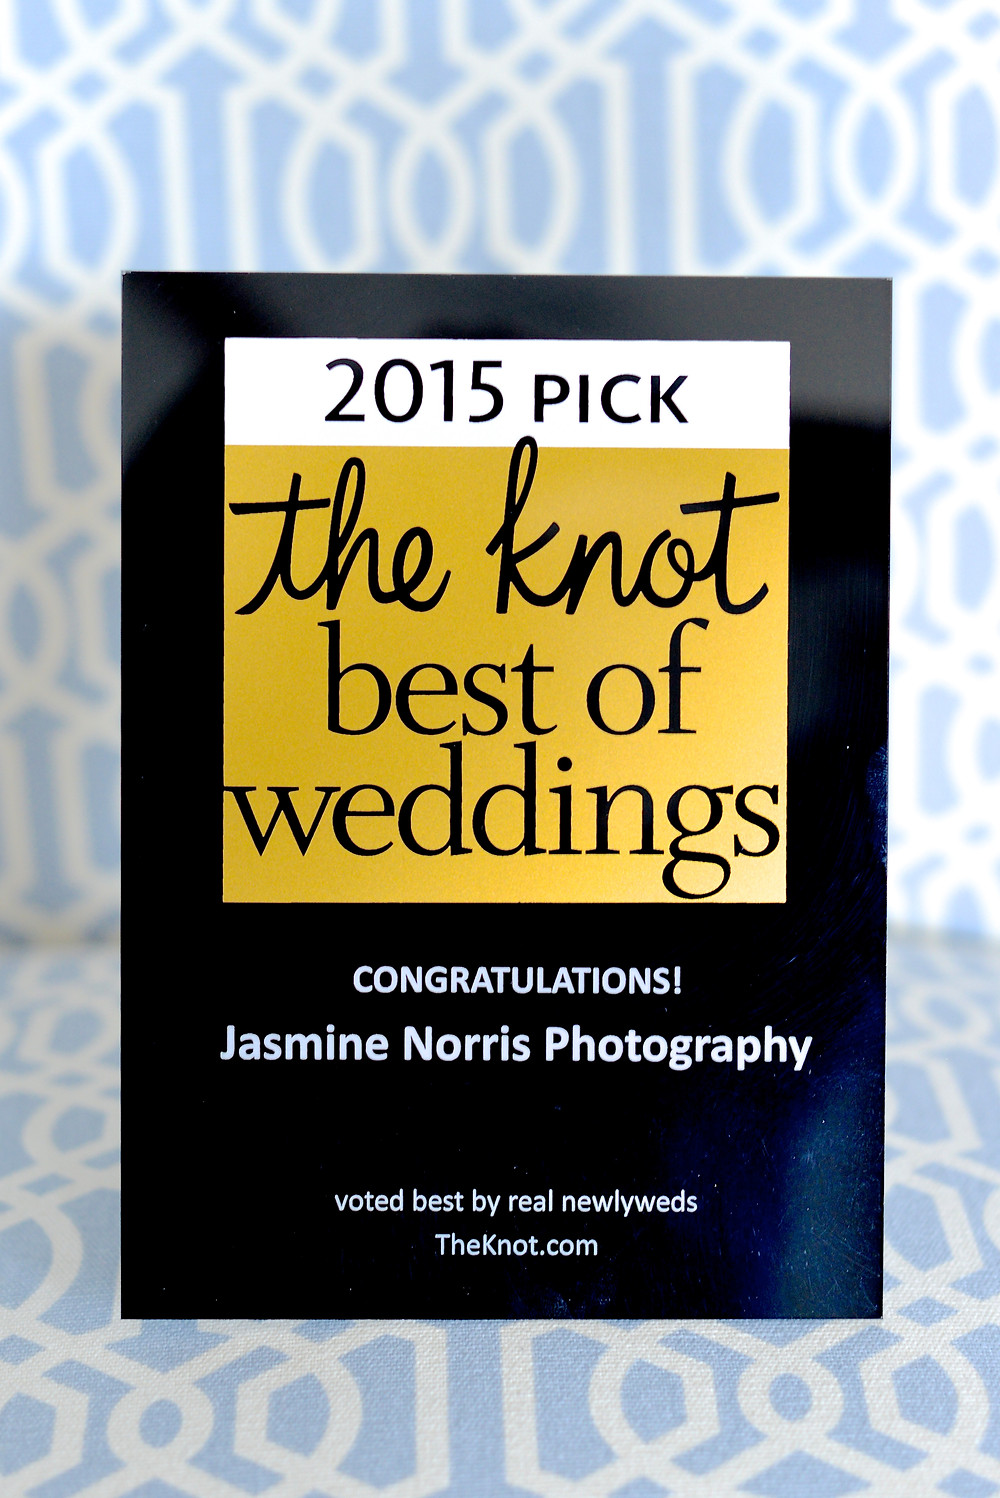 Jasmine Norris Photography The Knot Best of Weddings 2015